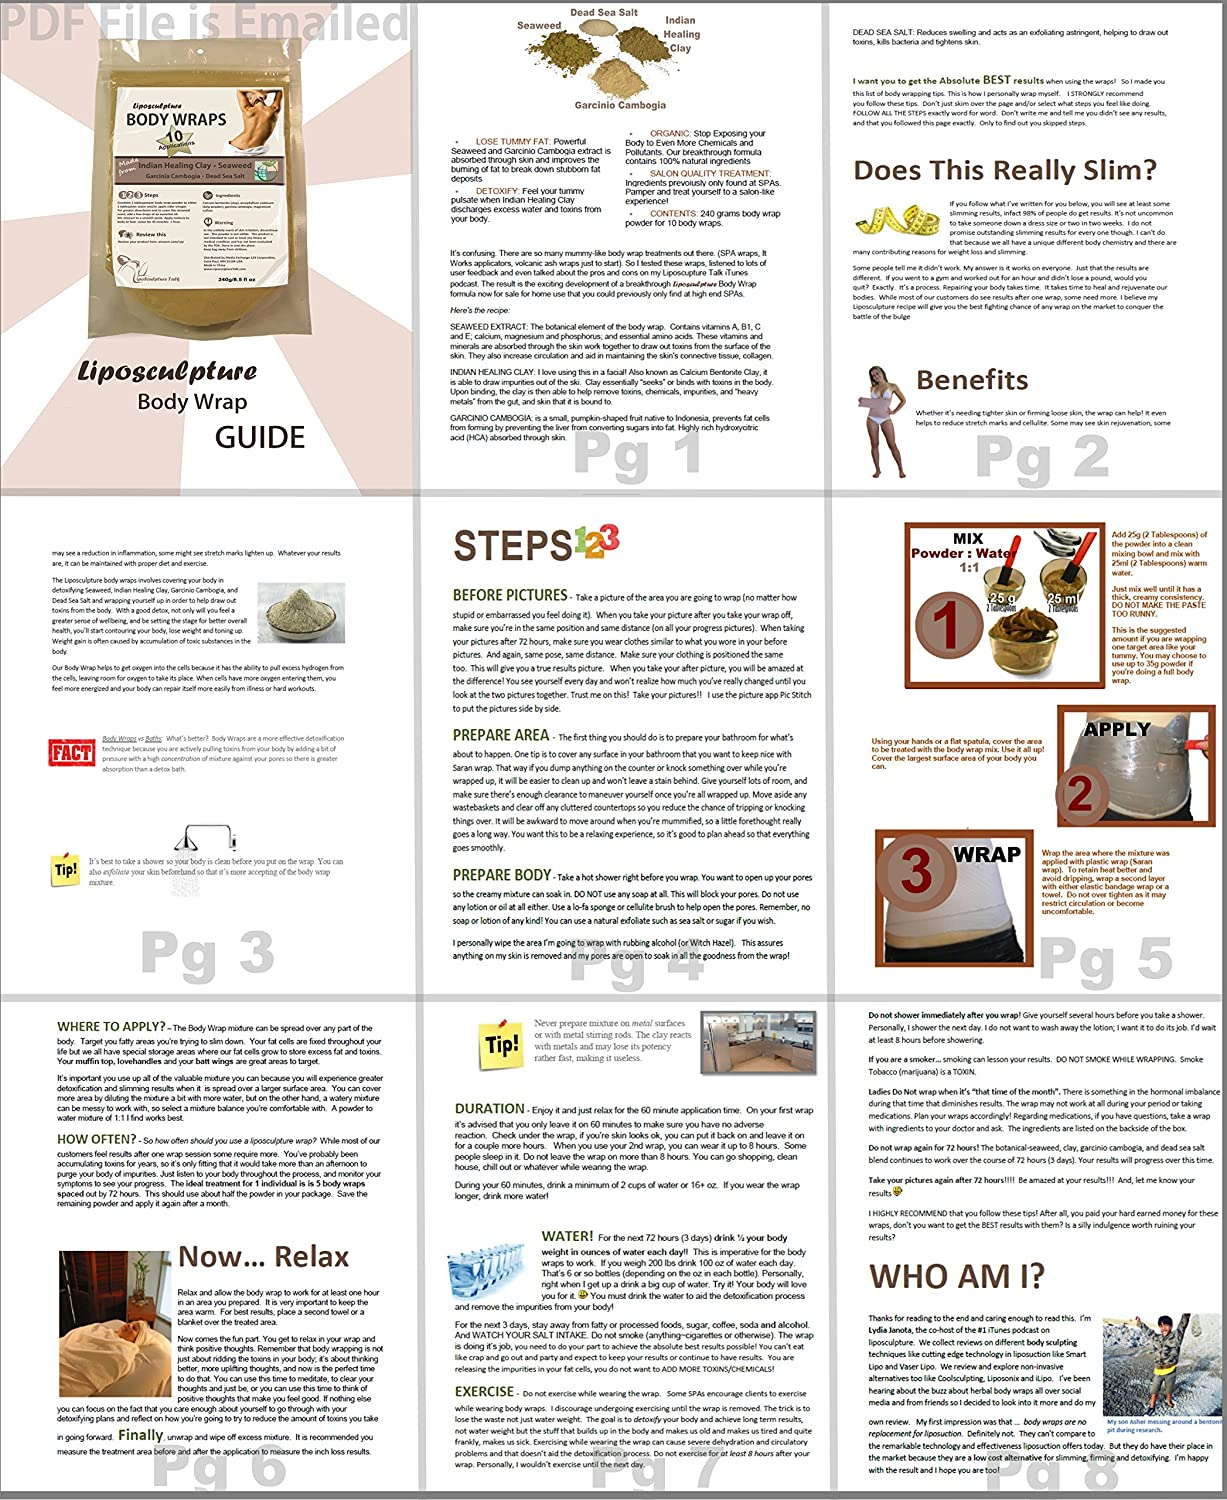 Home Algae Wrap - Features, Step-by-Step Description and Efficiency 45